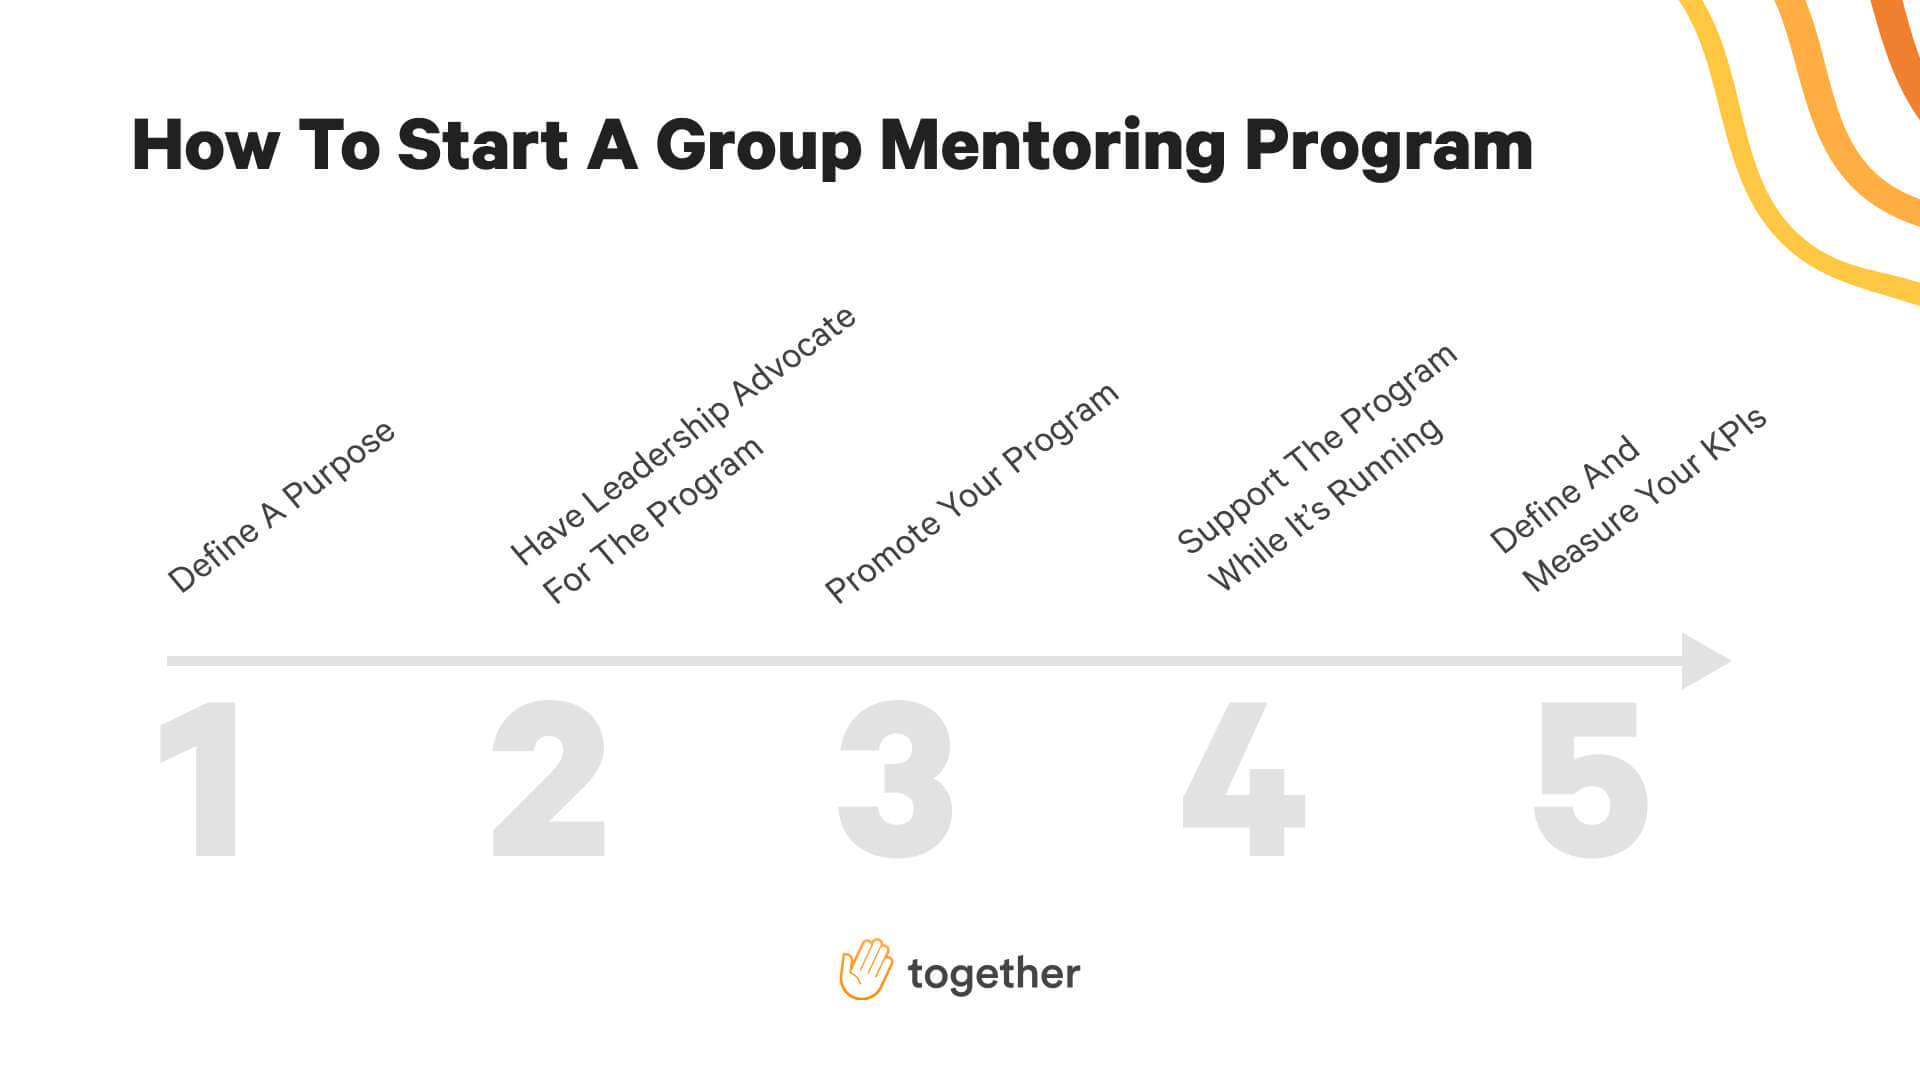 How To Start A Group Mentoring Program